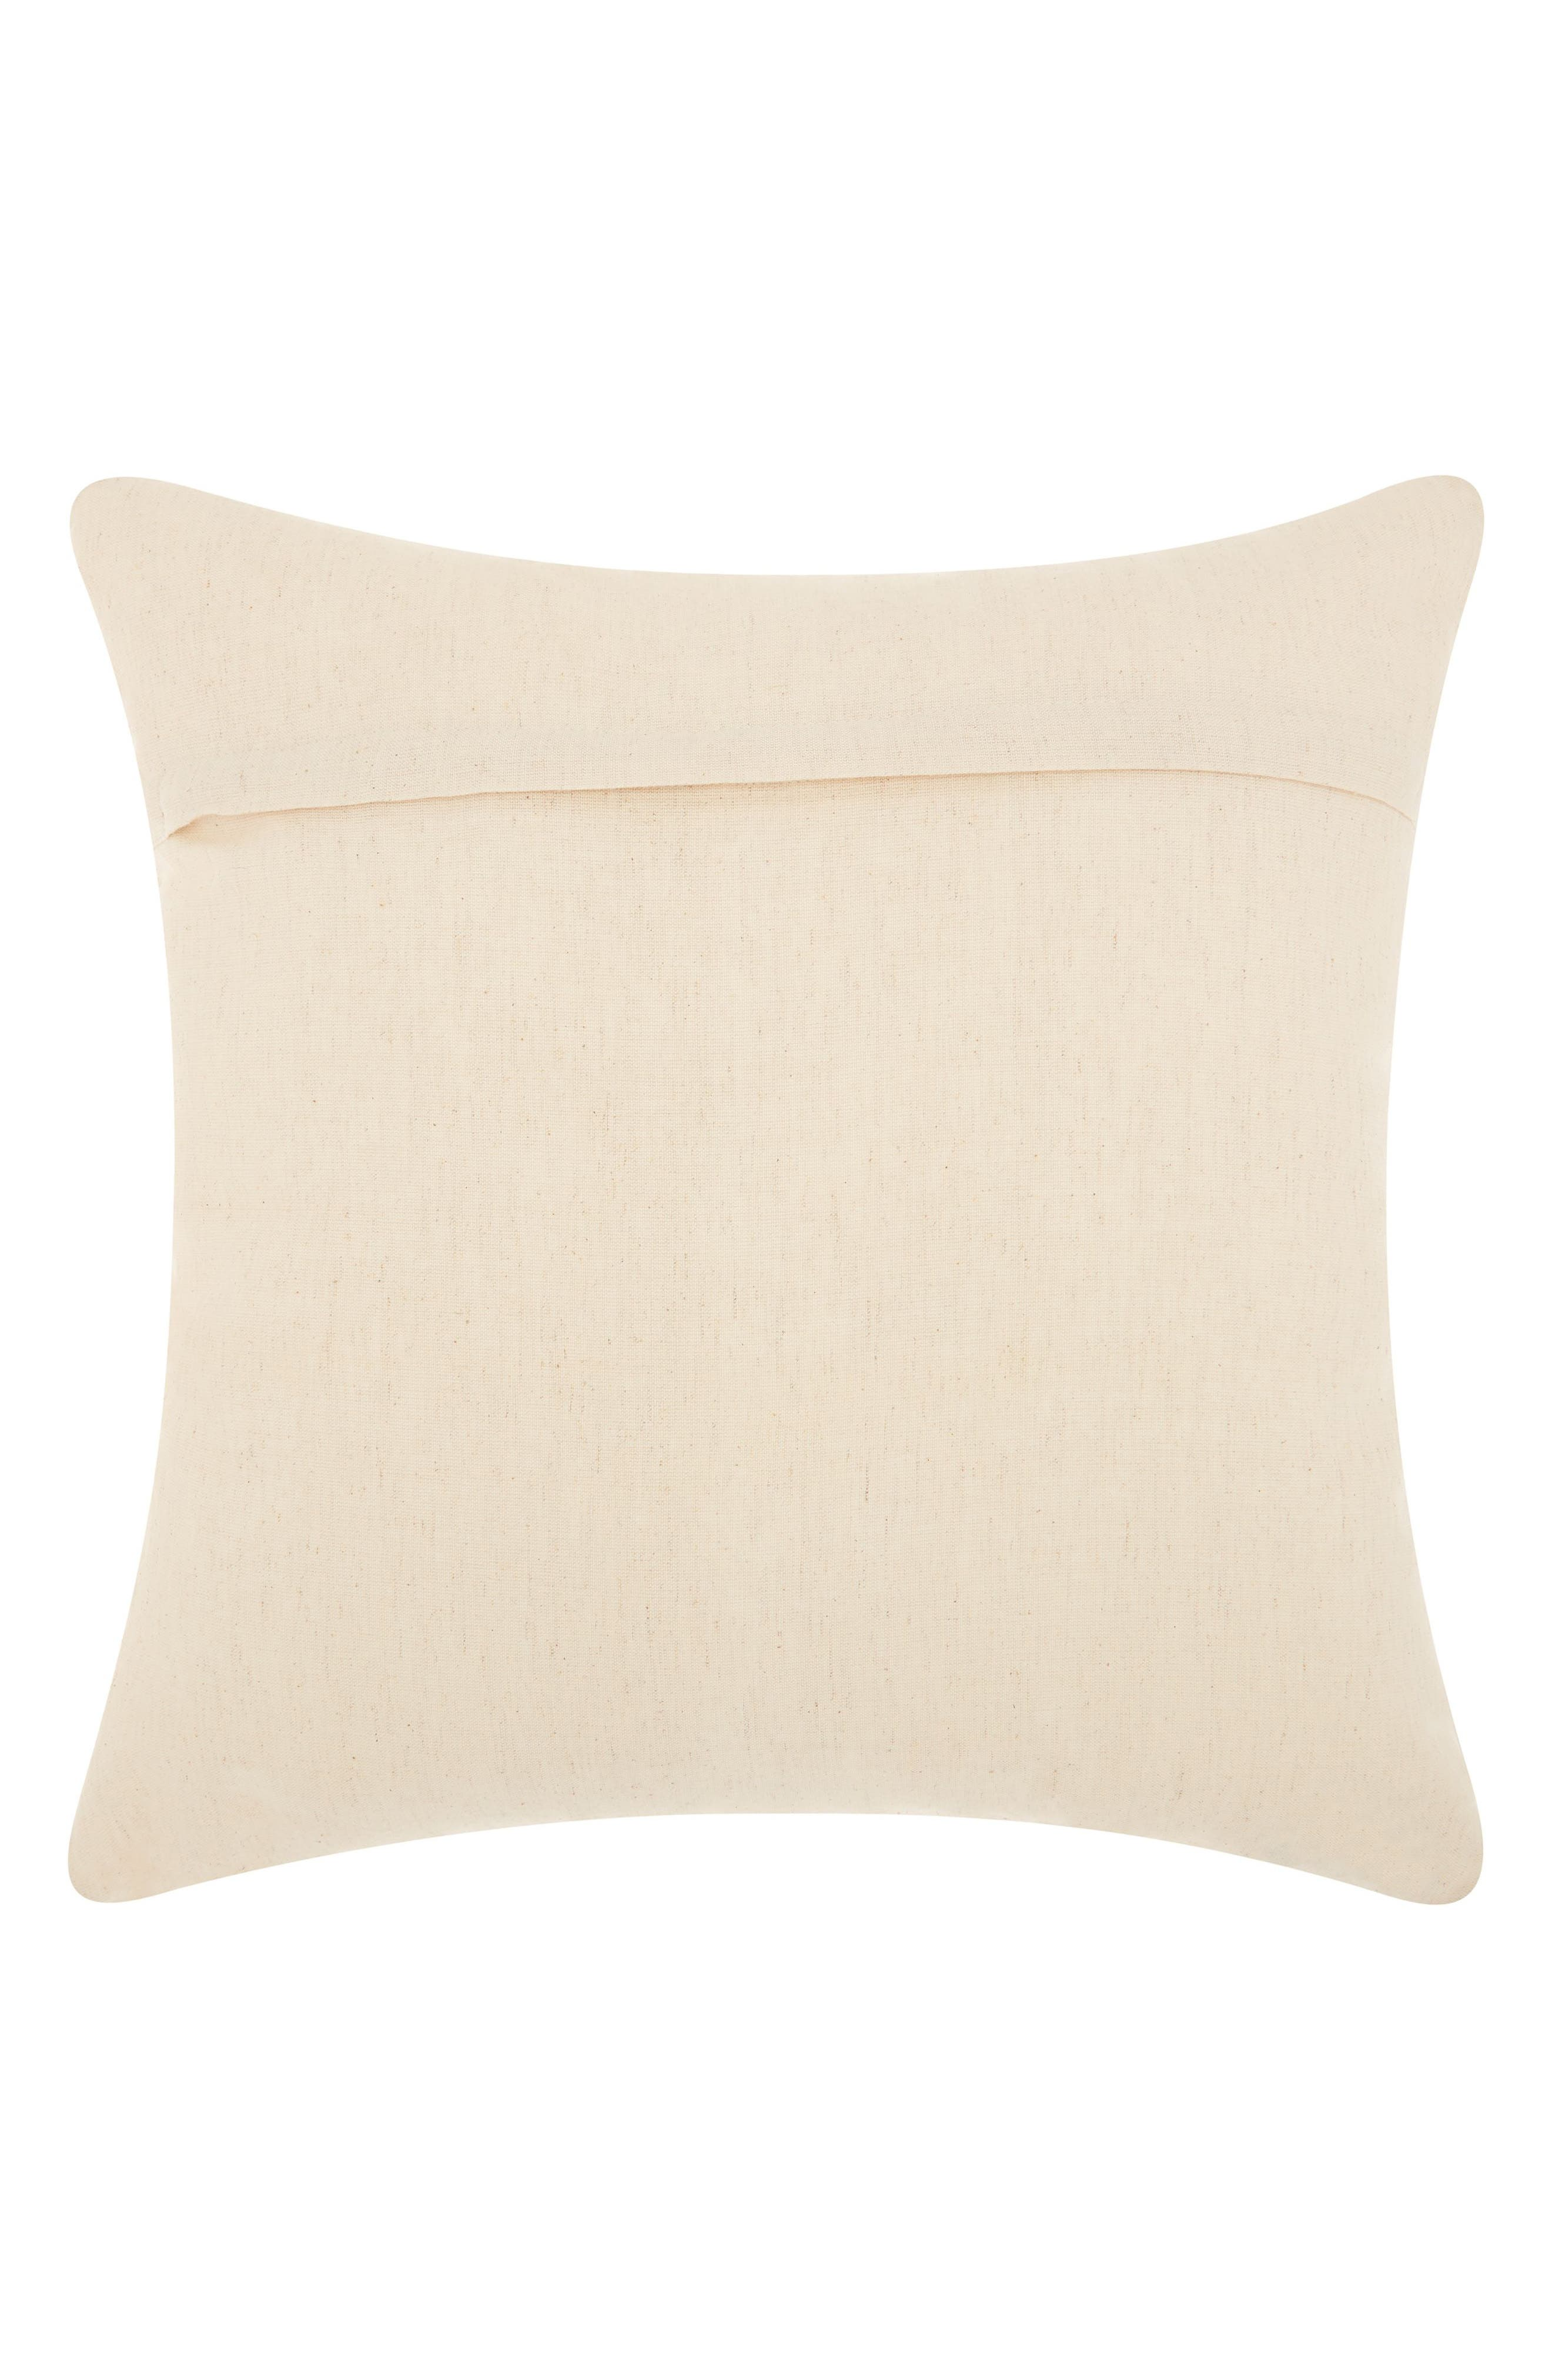 Classy Kitty Accent Pillow,                             Alternate thumbnail 2, color,                             250